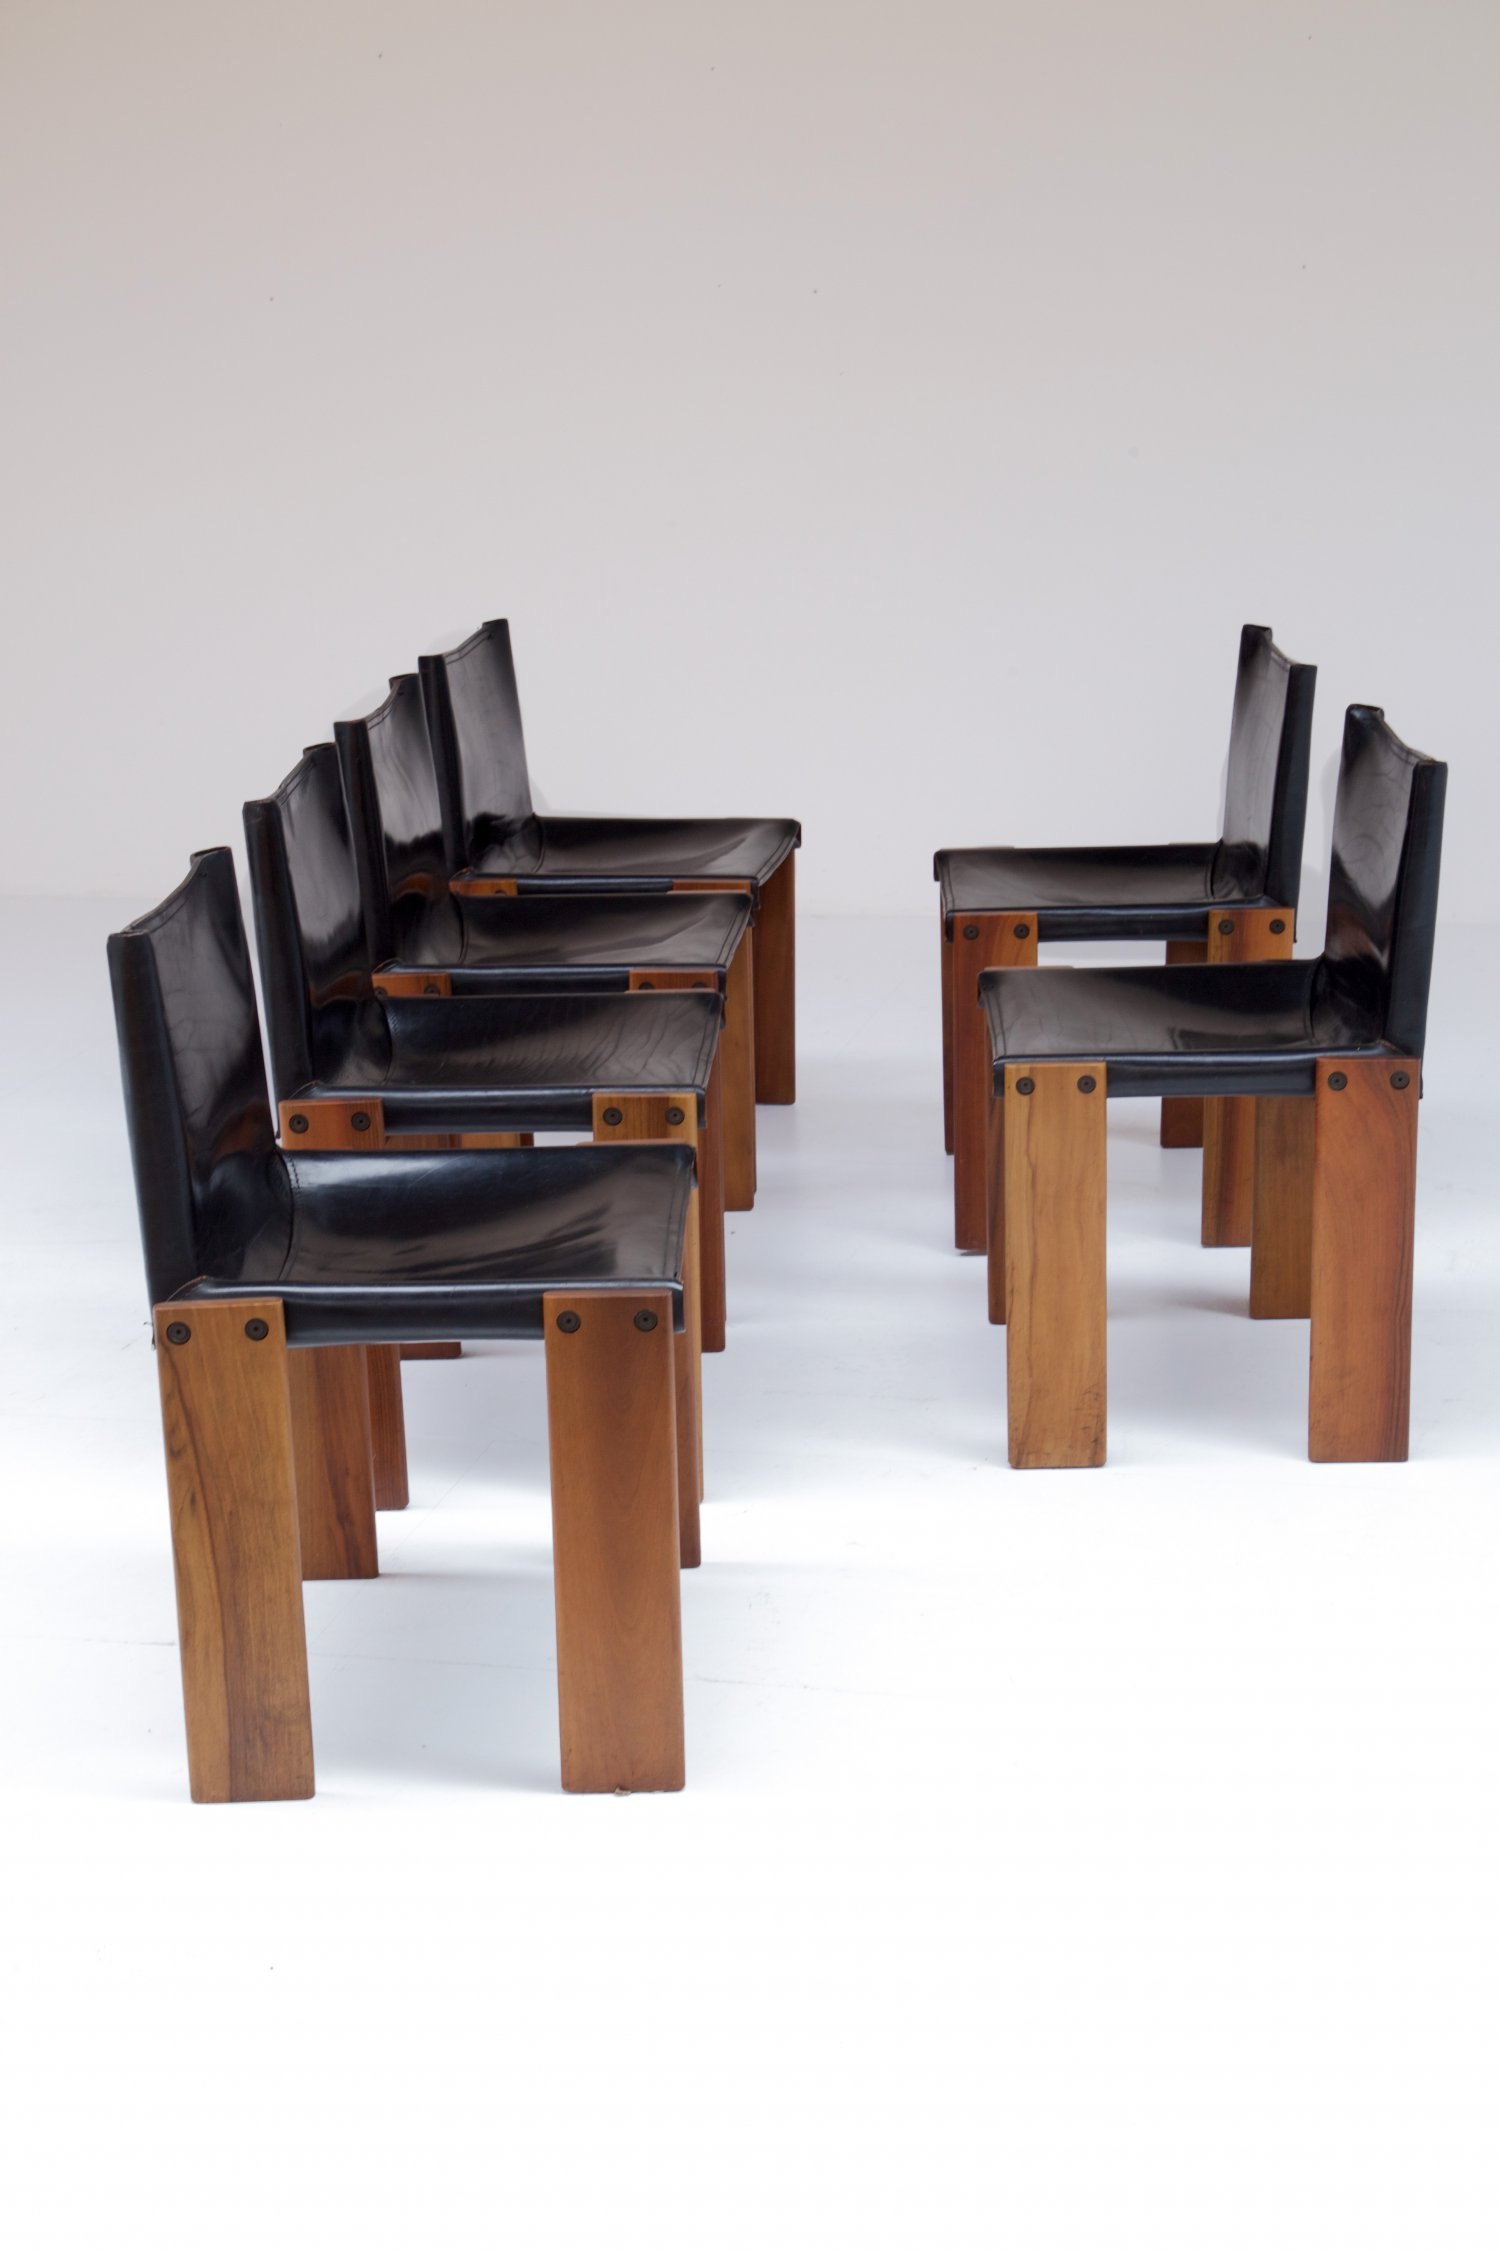 Monk chairs Afra & Tobia Scarpa